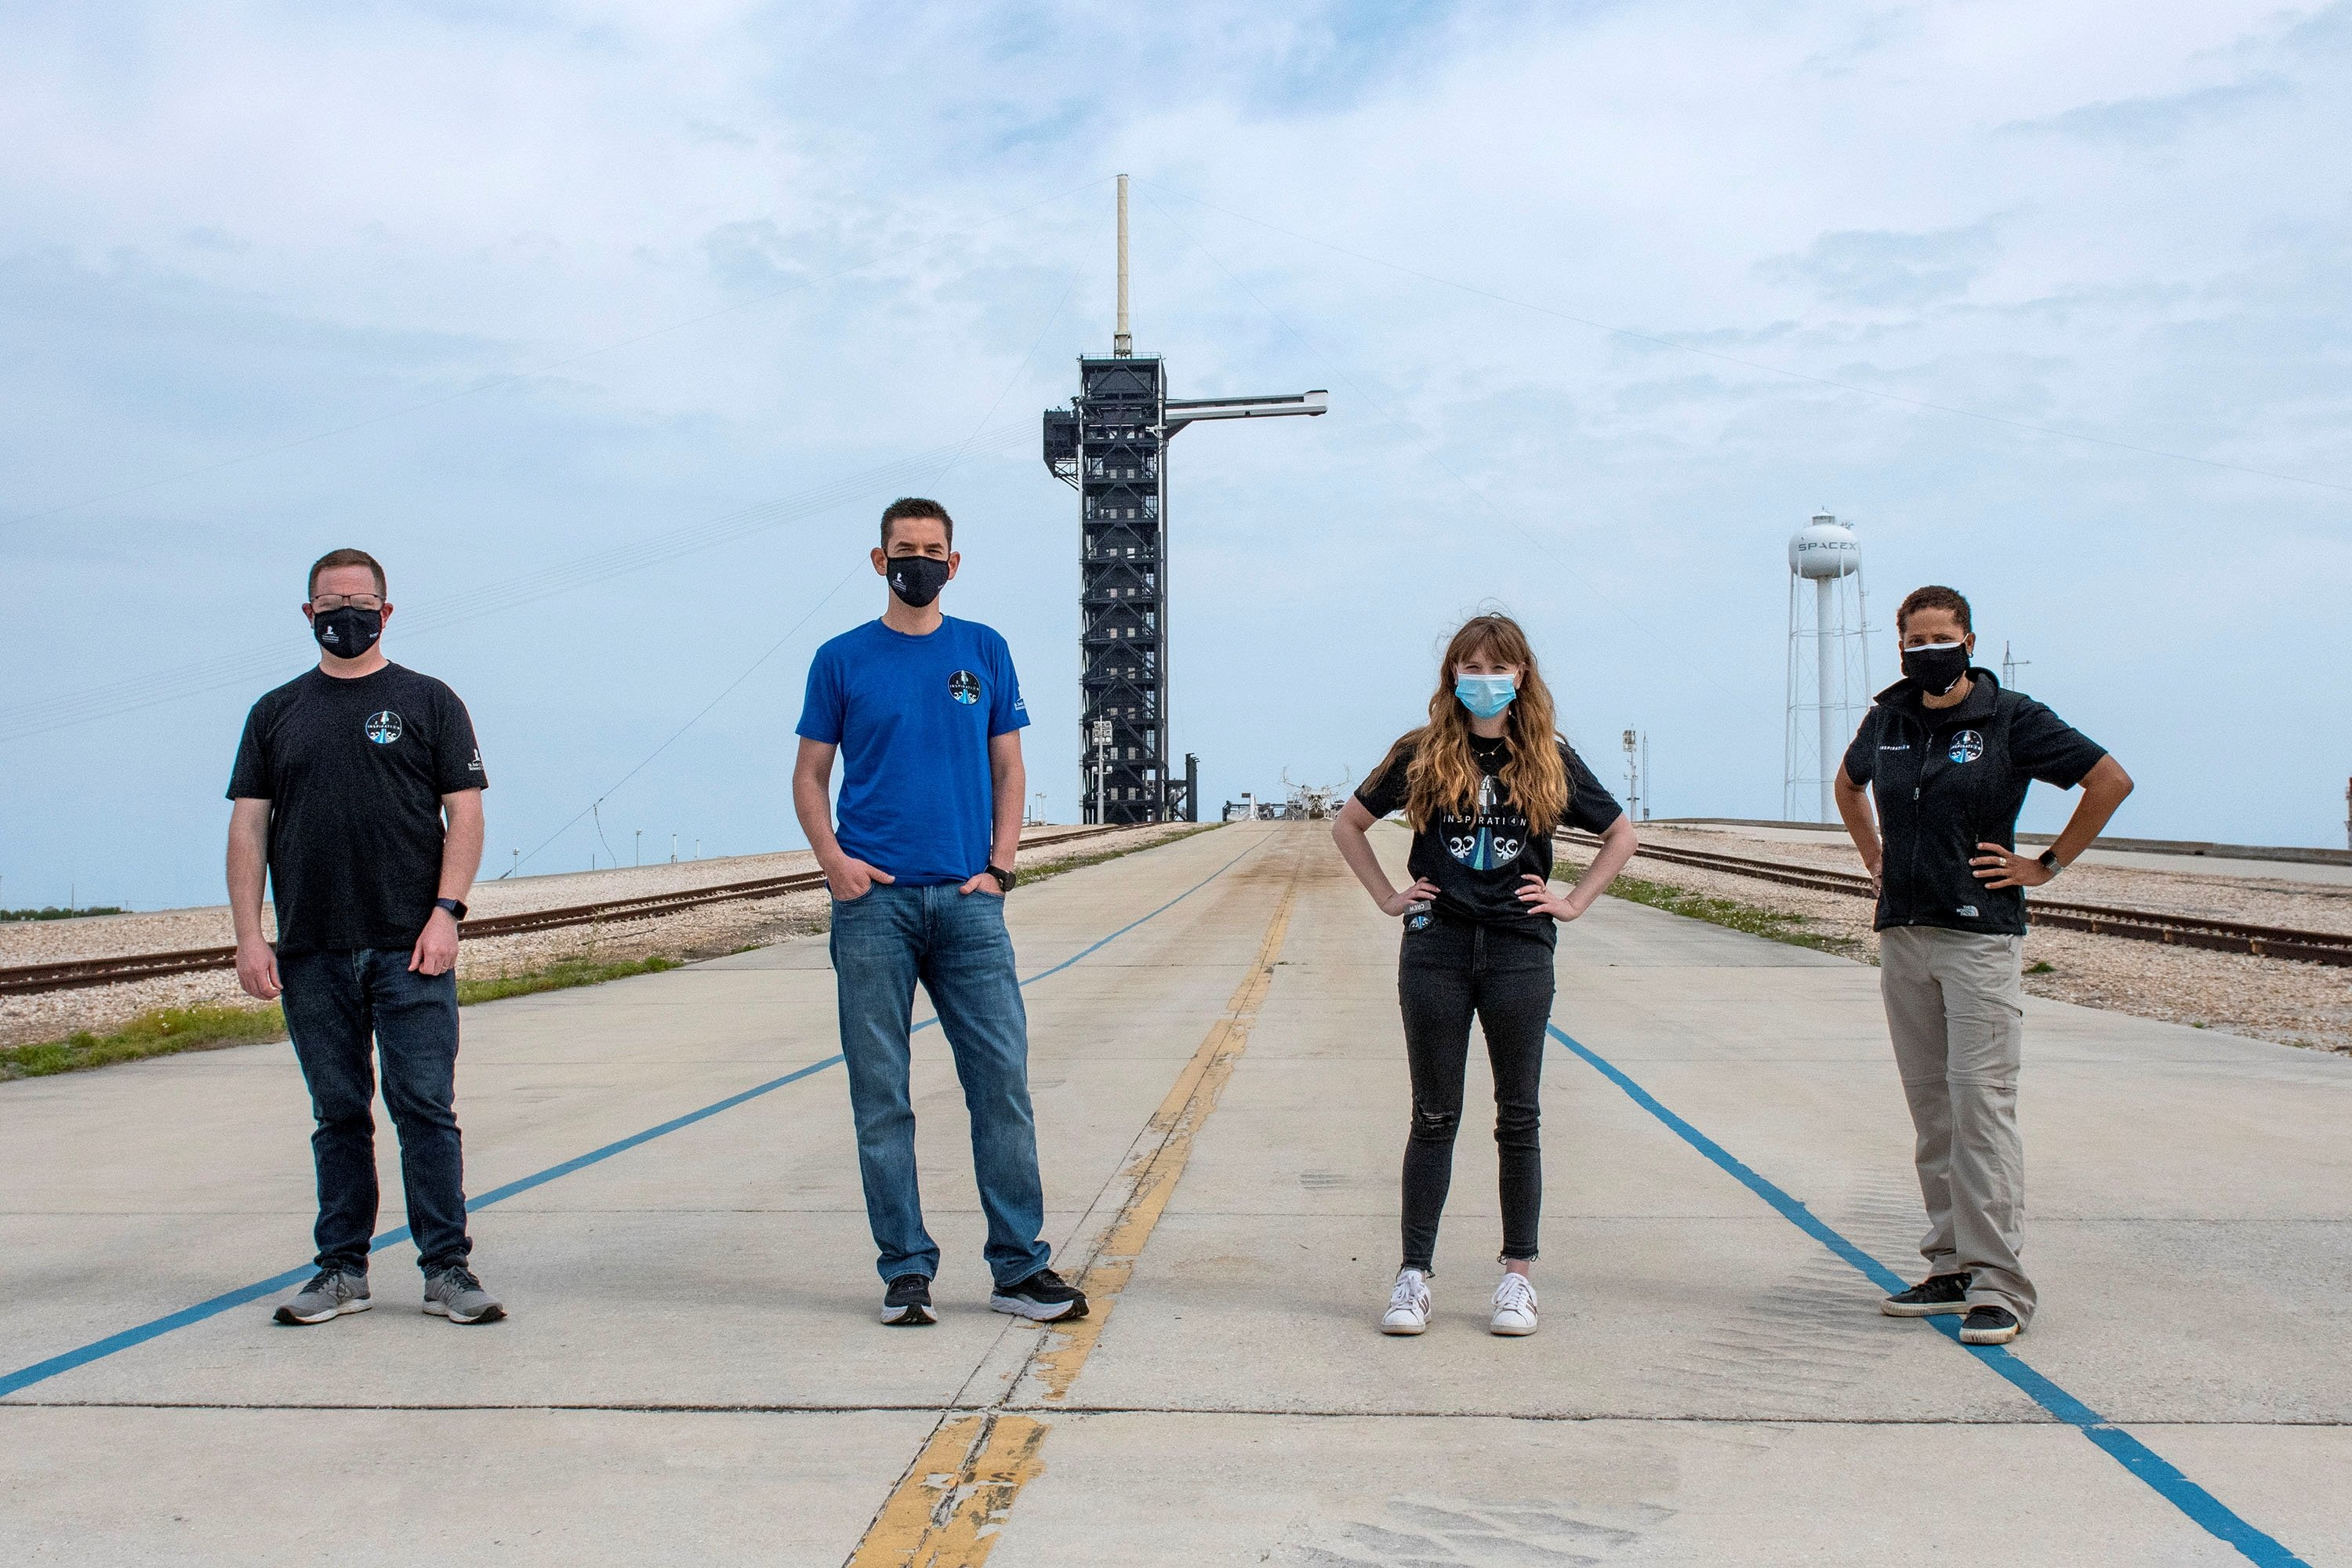 Jared Isaacman, Hayley Arceneaux, Sian Proctor and Chris Sembroski pose for a photo at the SpaceX launch tower at NASA's Kennedy Space Center at Cape Canaveral, Florida U.S., March 29, 2021 in this handout image provided by SpaceX. (Inspiration 4/Handout via REUTERS)